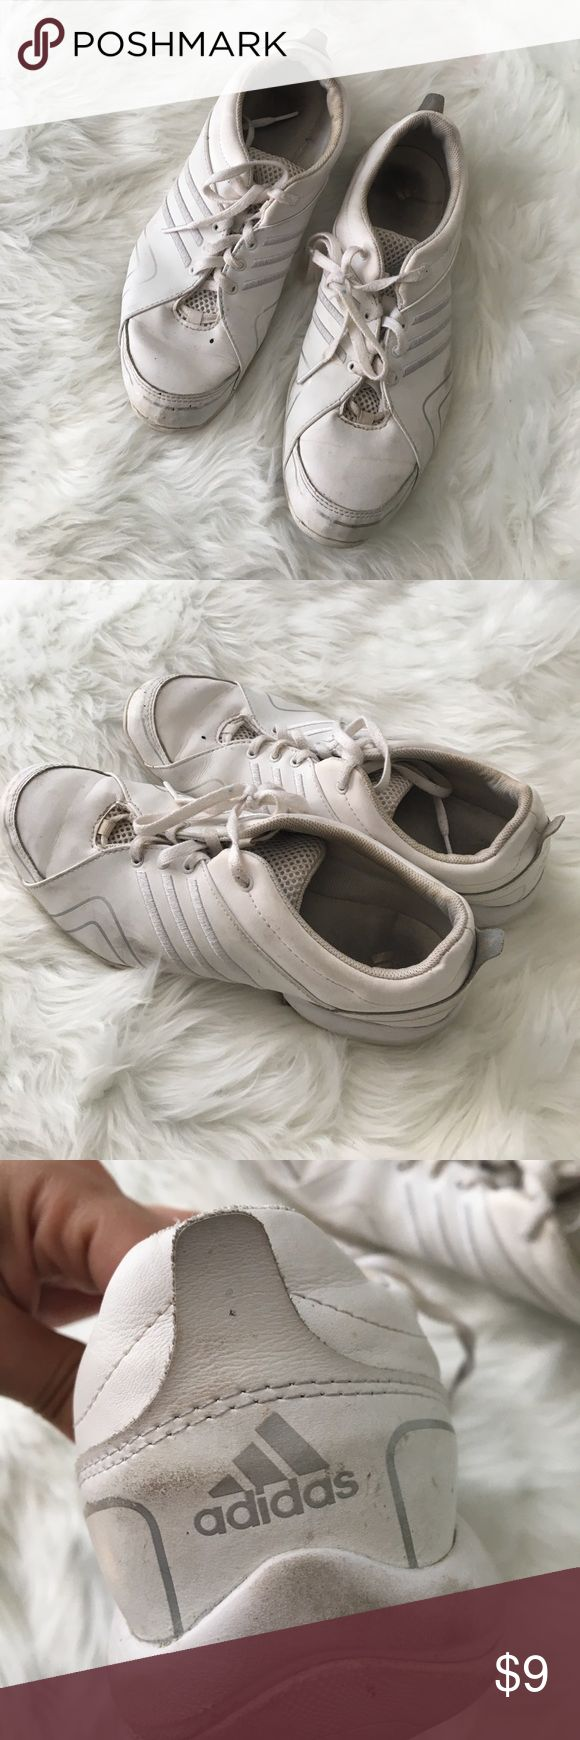 Adidas cheerleading/workout sneakers In good condition, very comfortable. A little scuffed up just need a good wash adidas Shoes Sneakers